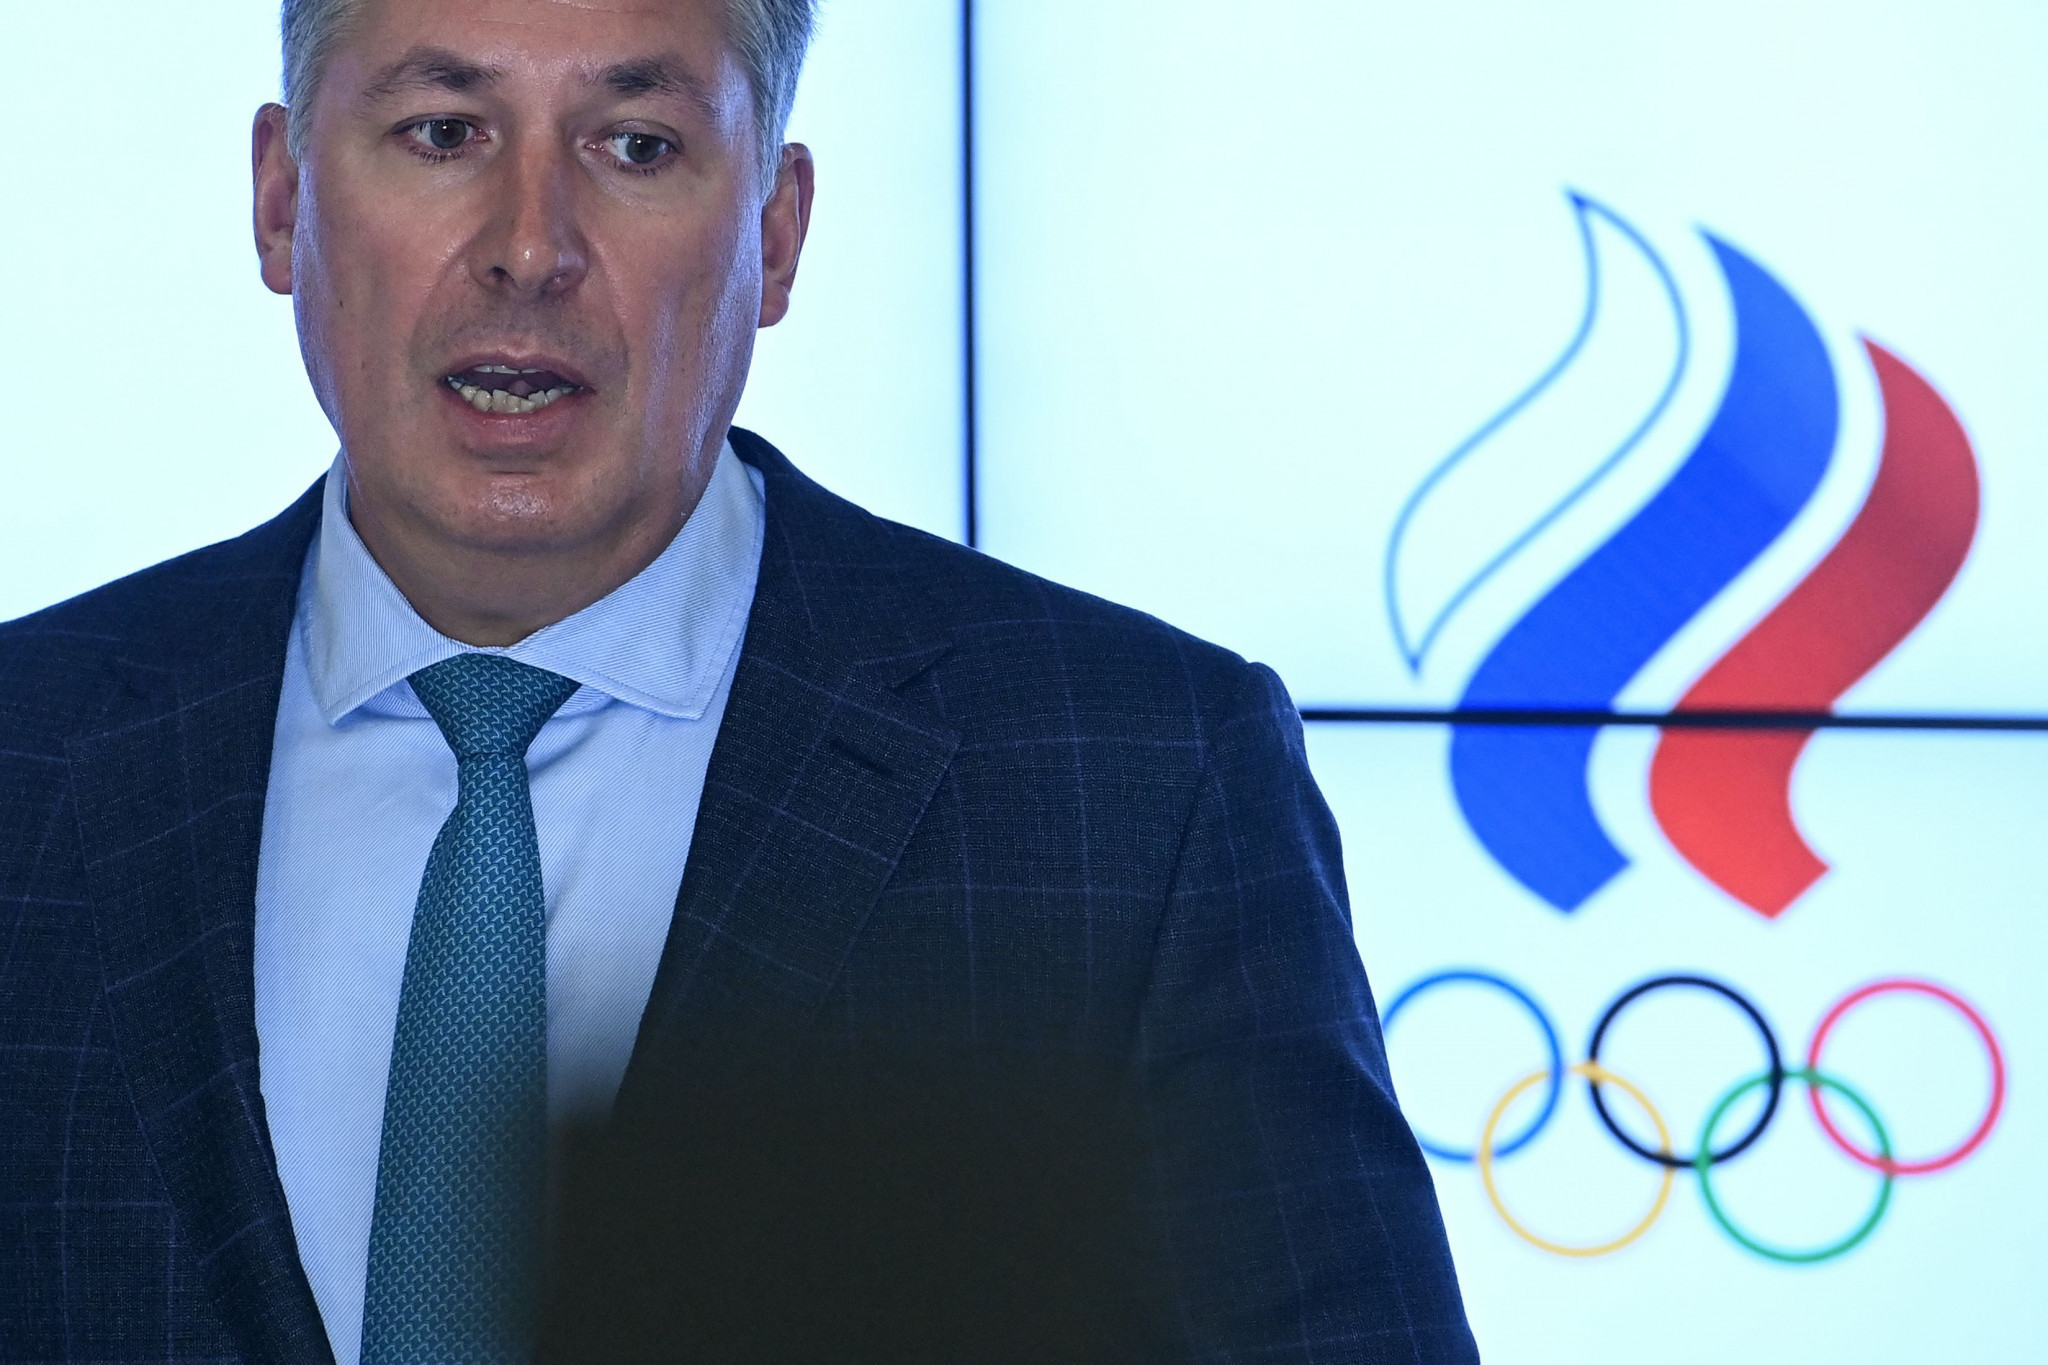 """Russian Olympic Committee President Stanislav Pozdnyakov has welcomed the news that the country's athletes will be able to compete under the name """"ROC"""" at the next two Olympics and Paralympics ©Getty Images"""